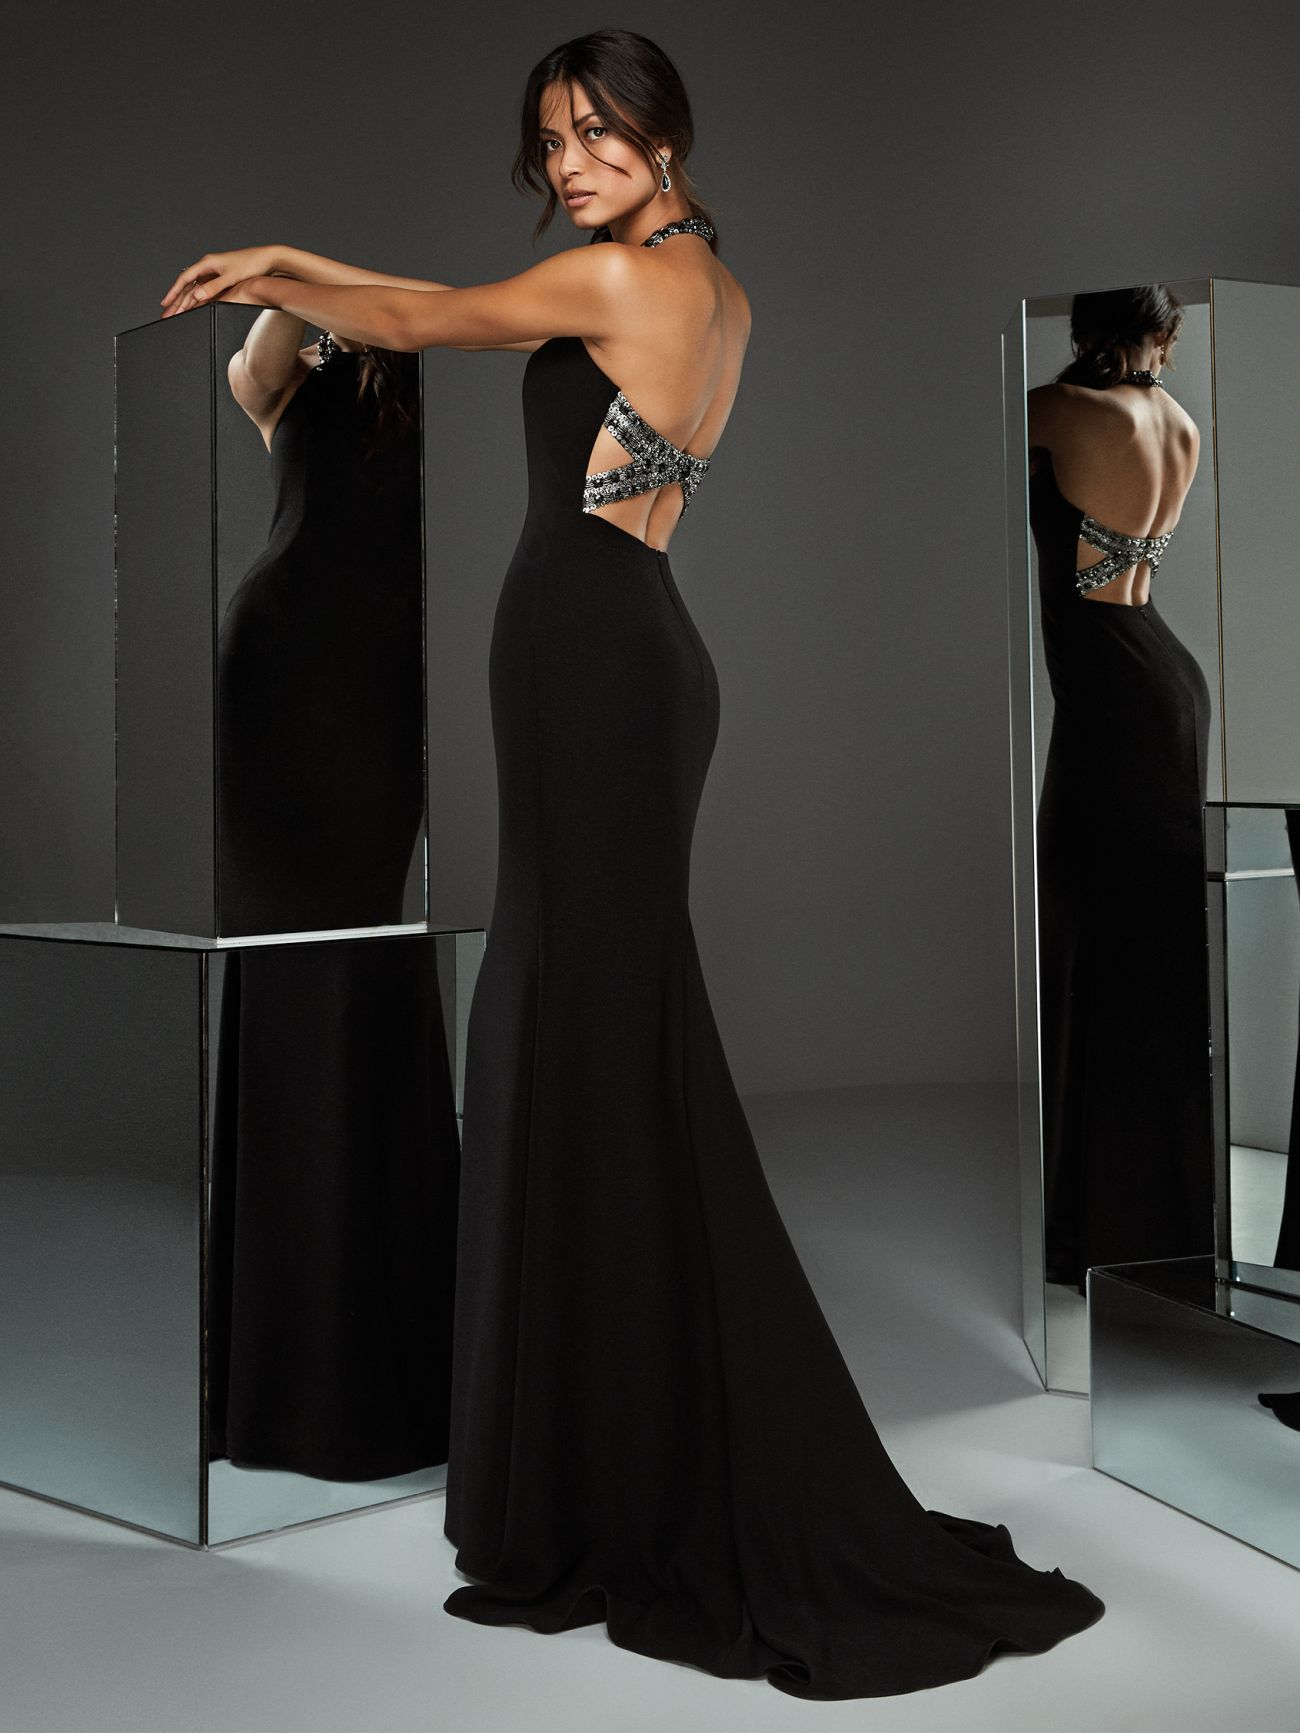 coupon codes finest selection good out x Formal Dresses Dublin Ireland